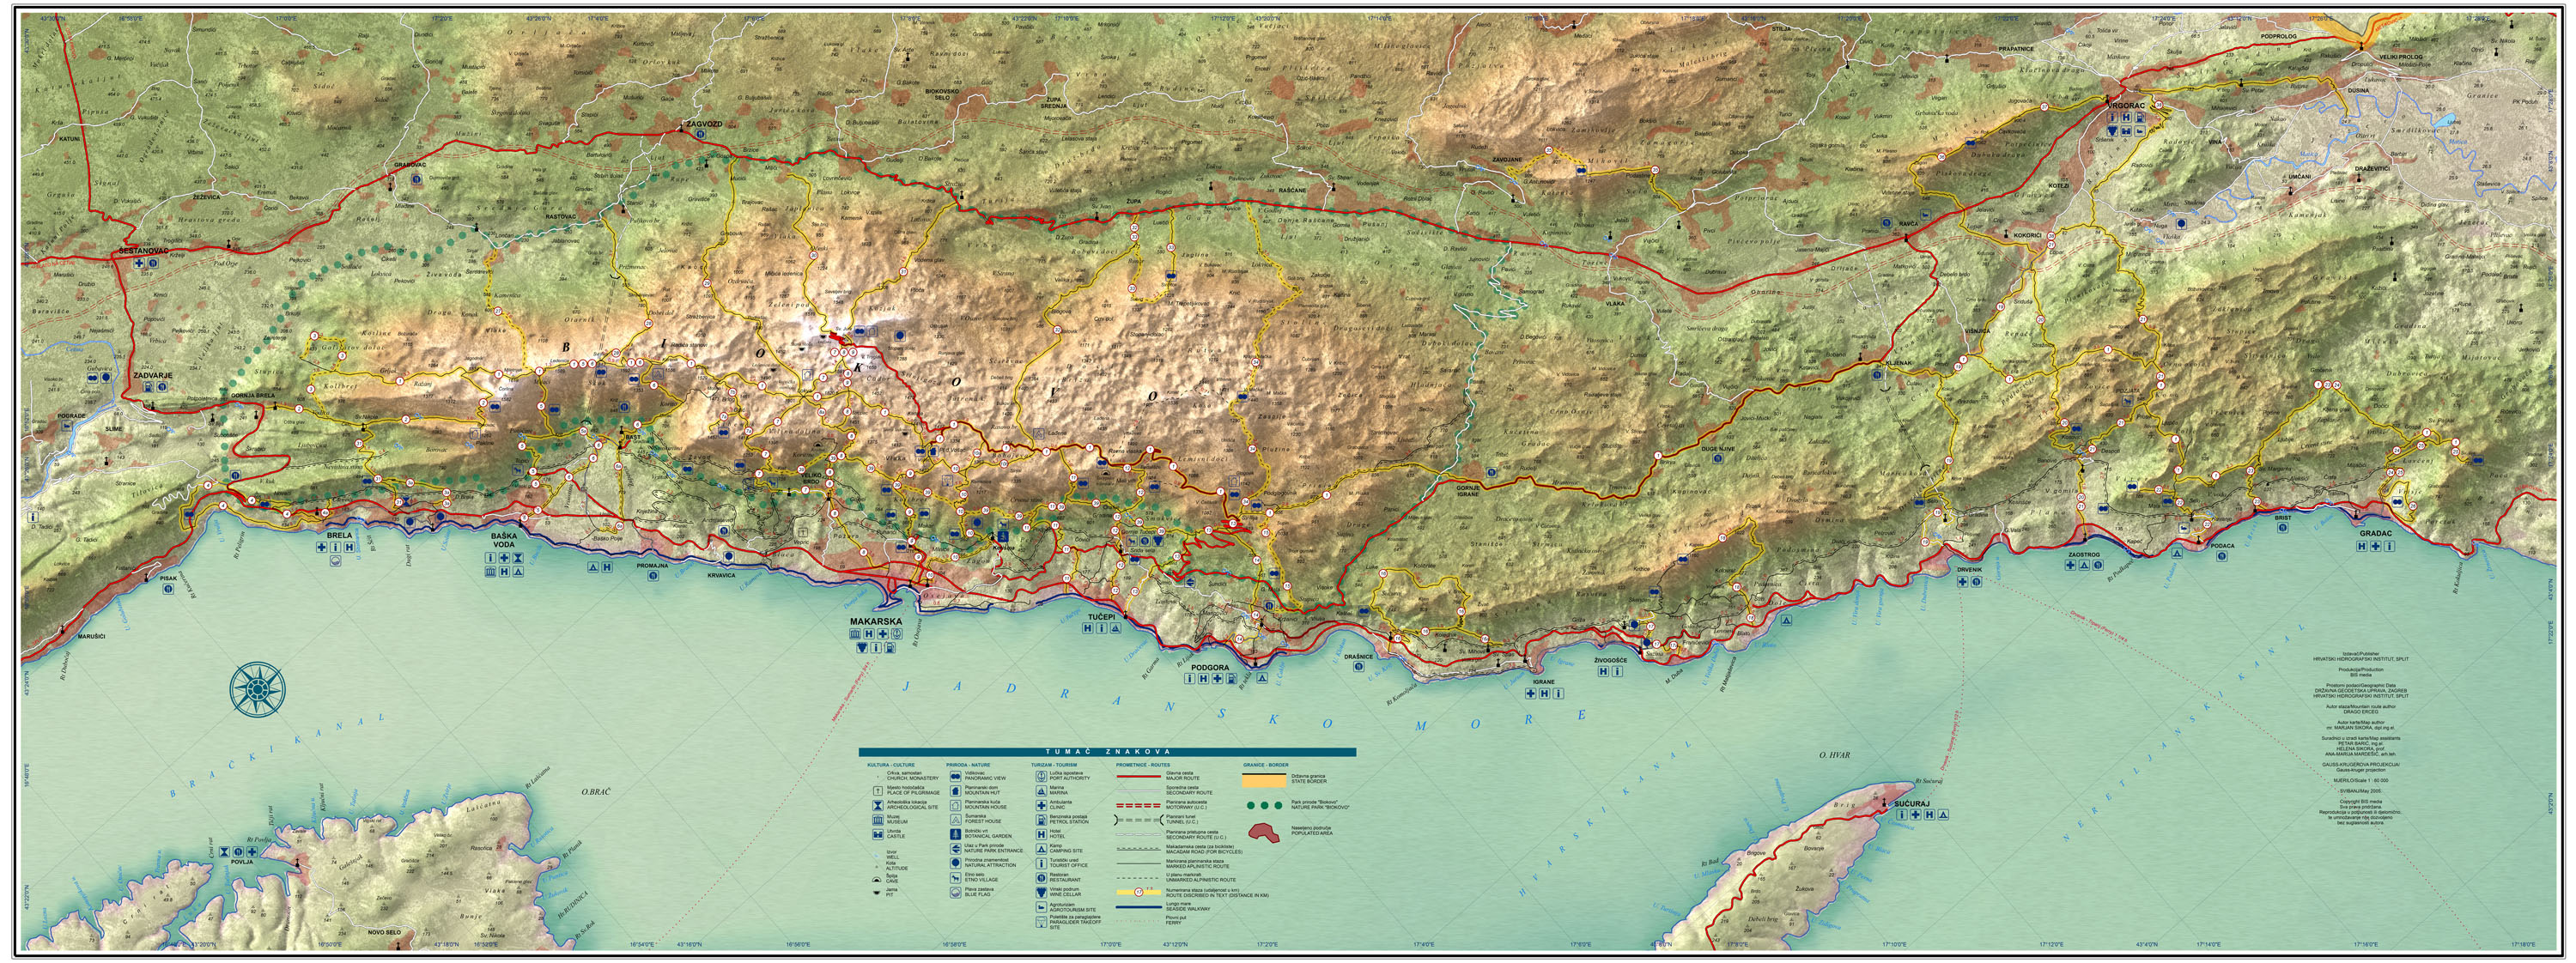 karta makarske Map of Makarska Riviera and Biokovo karta makarske